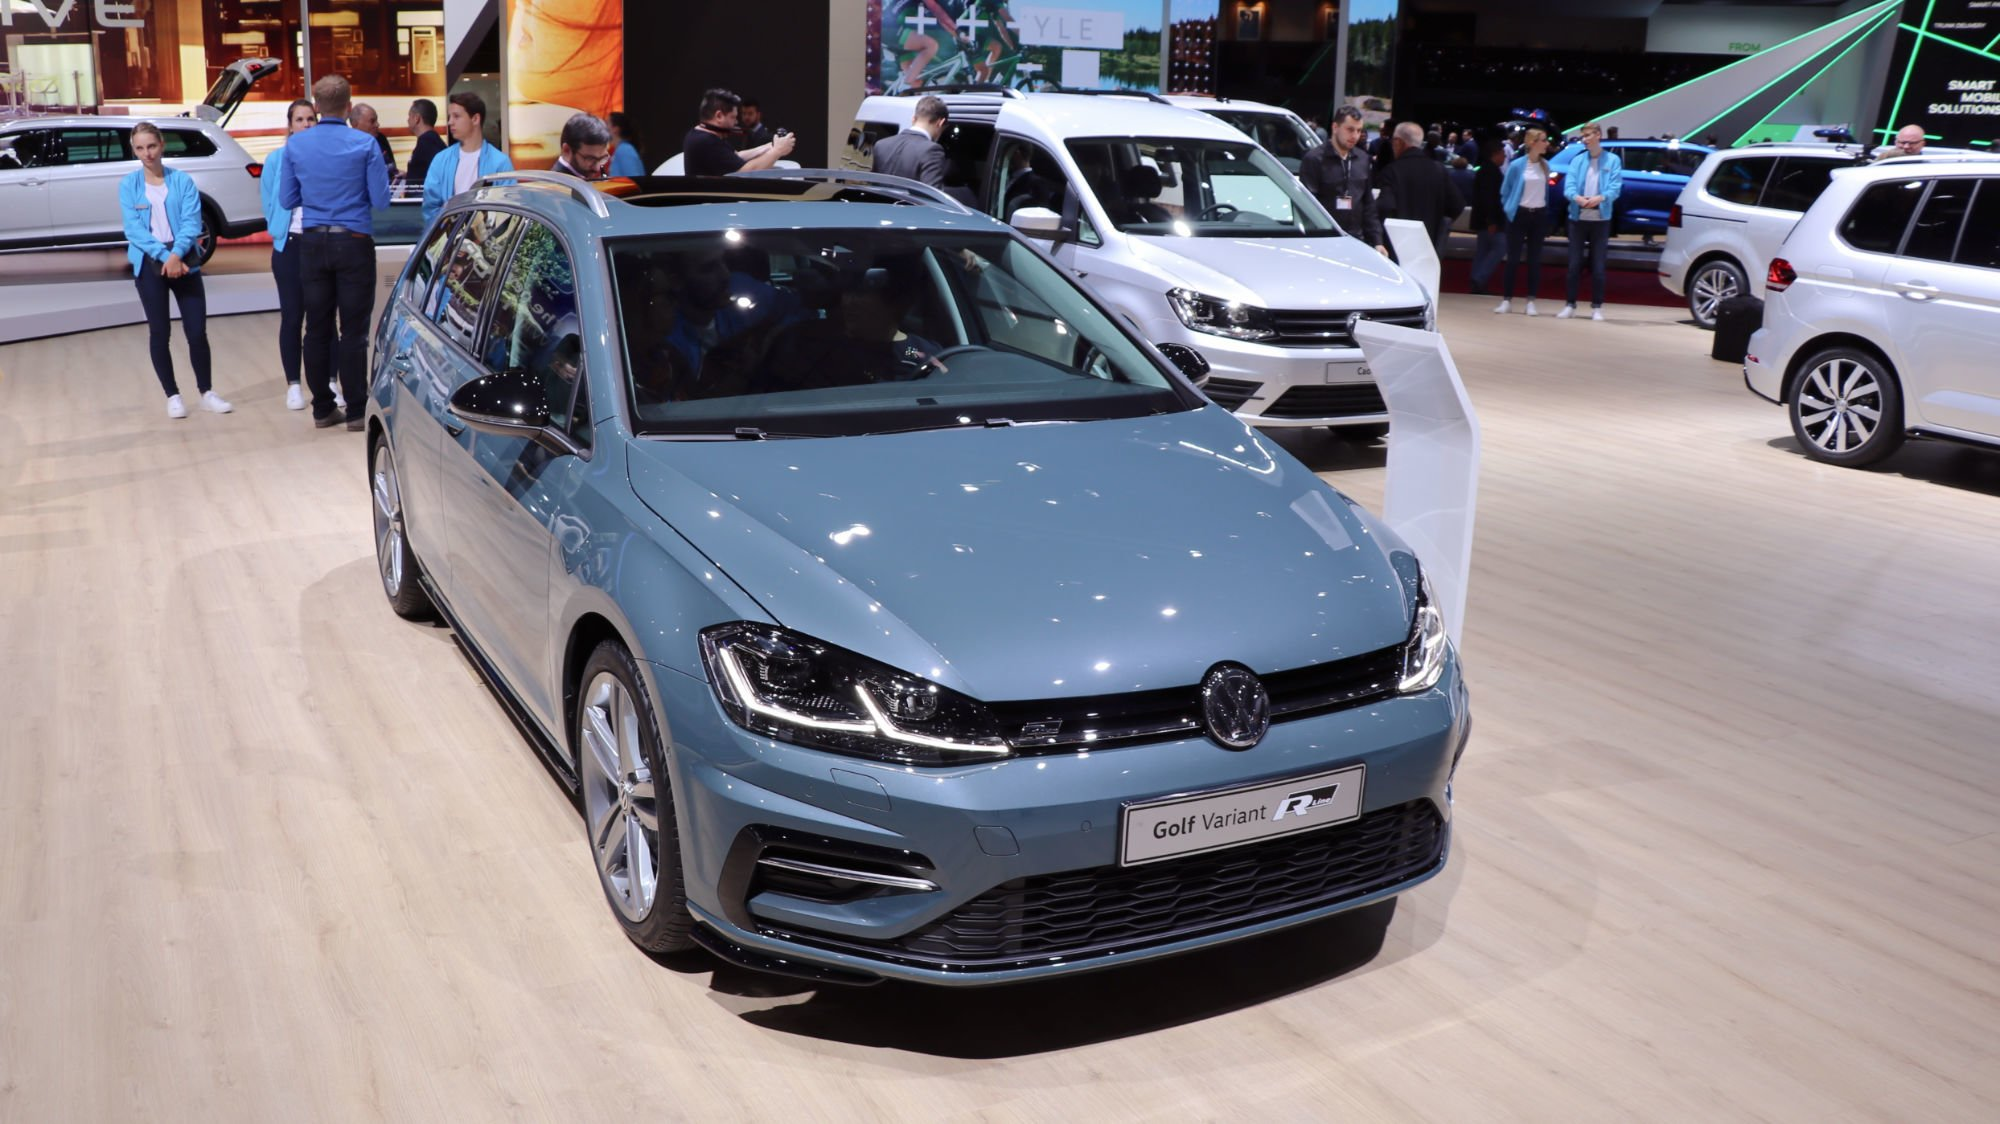 Germany Cars: 2019 (Q1) Germany: Best-Selling Car Brands And Models